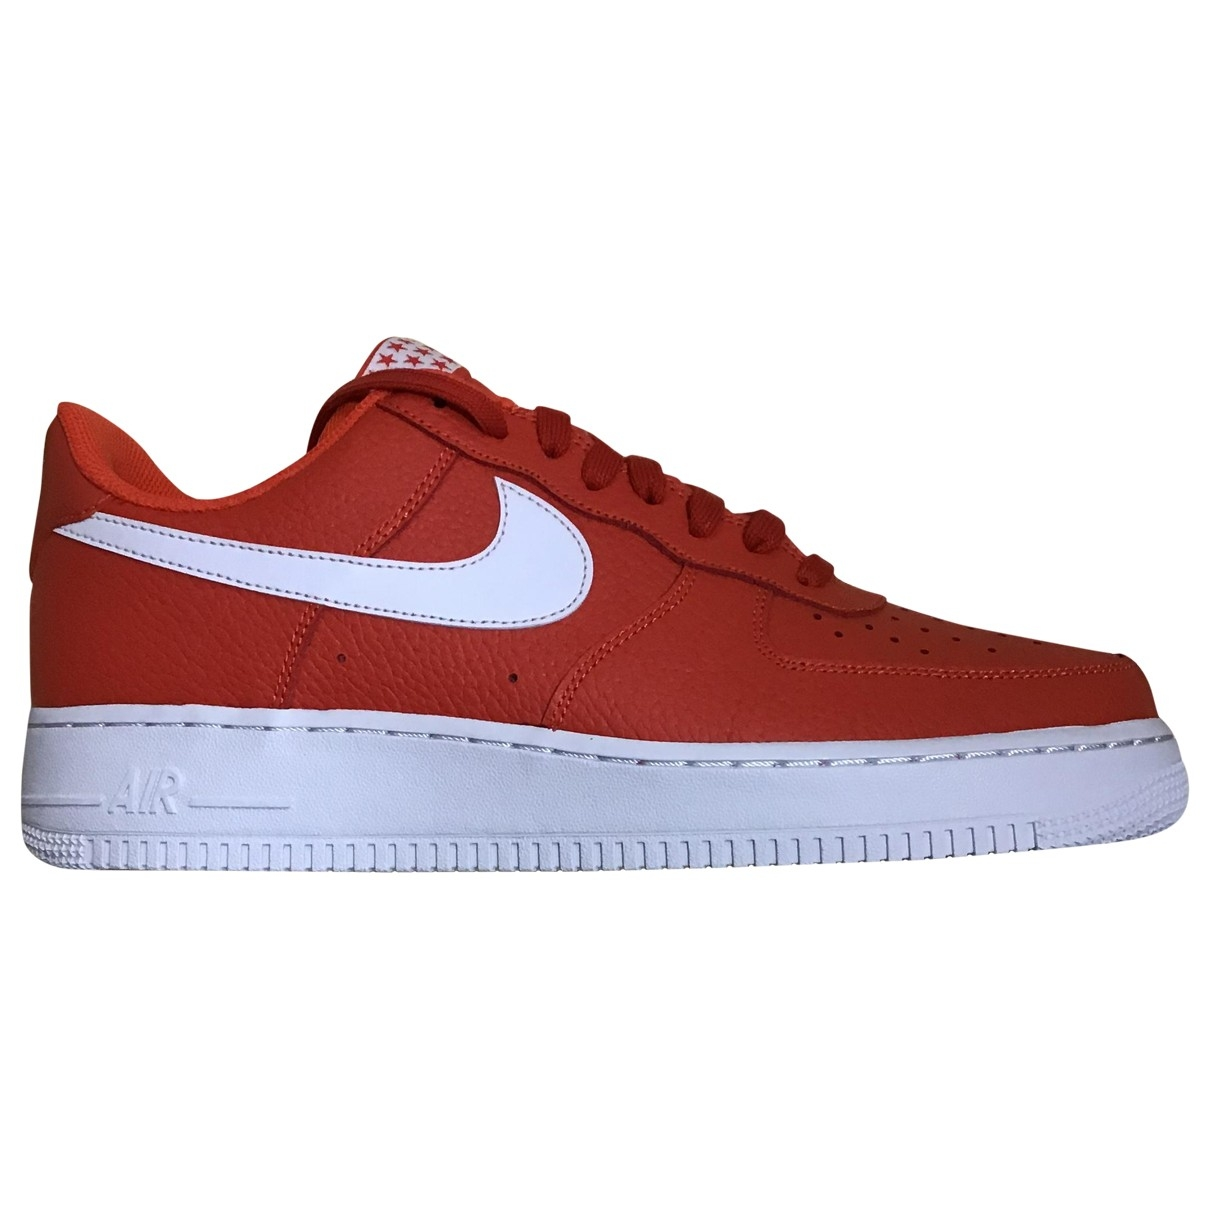 Nike Air Force 1 Orange Leather Trainers for Men 45 EU